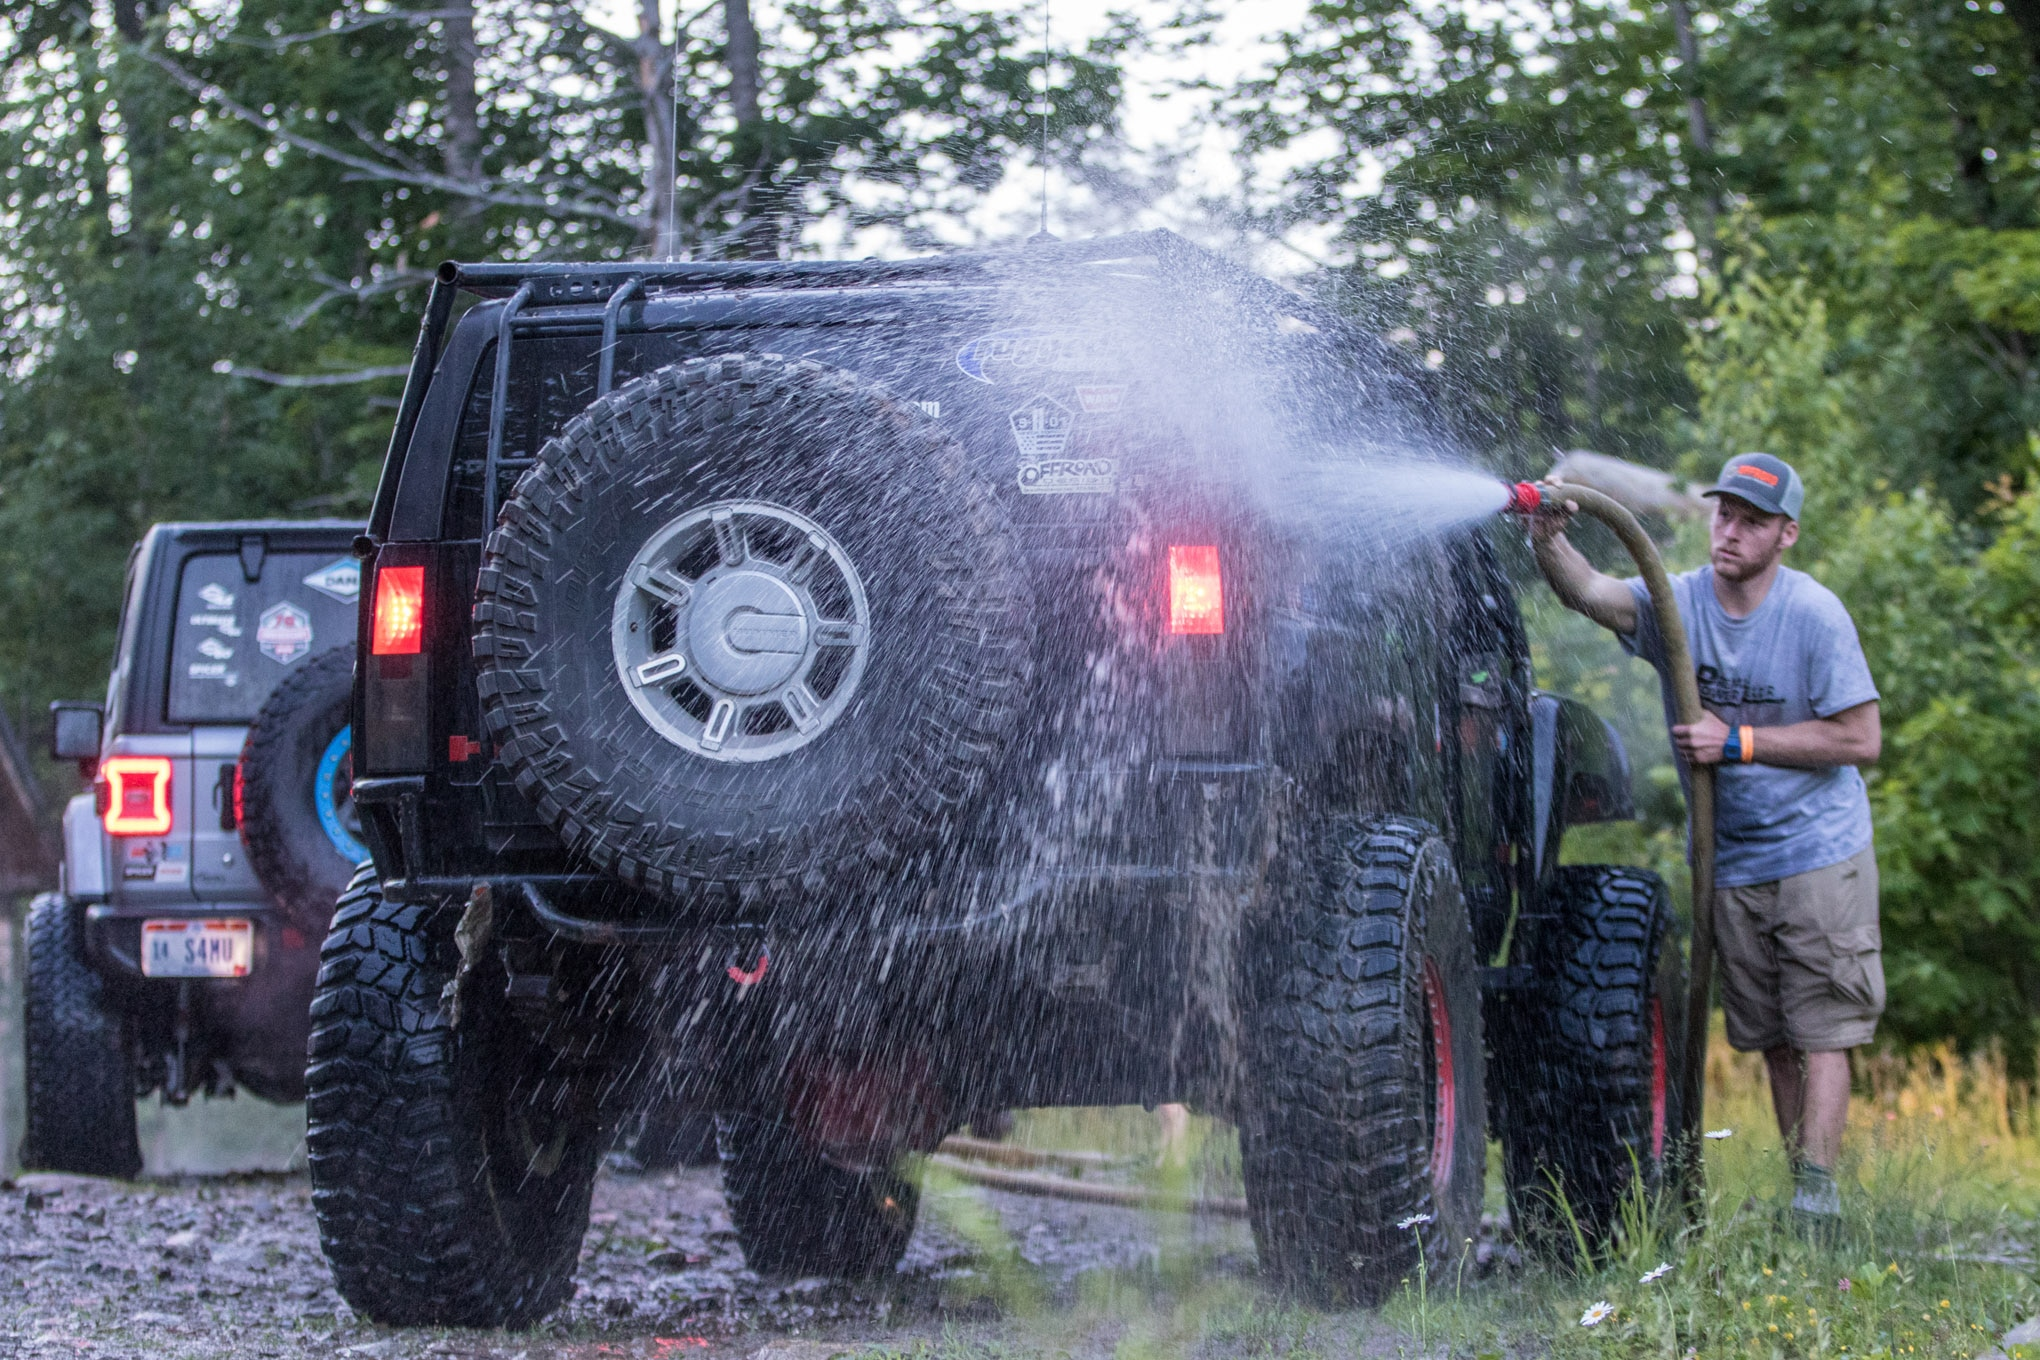 Playing in the mud isn't so bad when you know there's a car wash on the premises to get all of that sediment and debris out of your wheels, frame, and bearings. Chris Paul knows what's up. He had his co-driver, Kyle Cunliffe, do the cleaning!